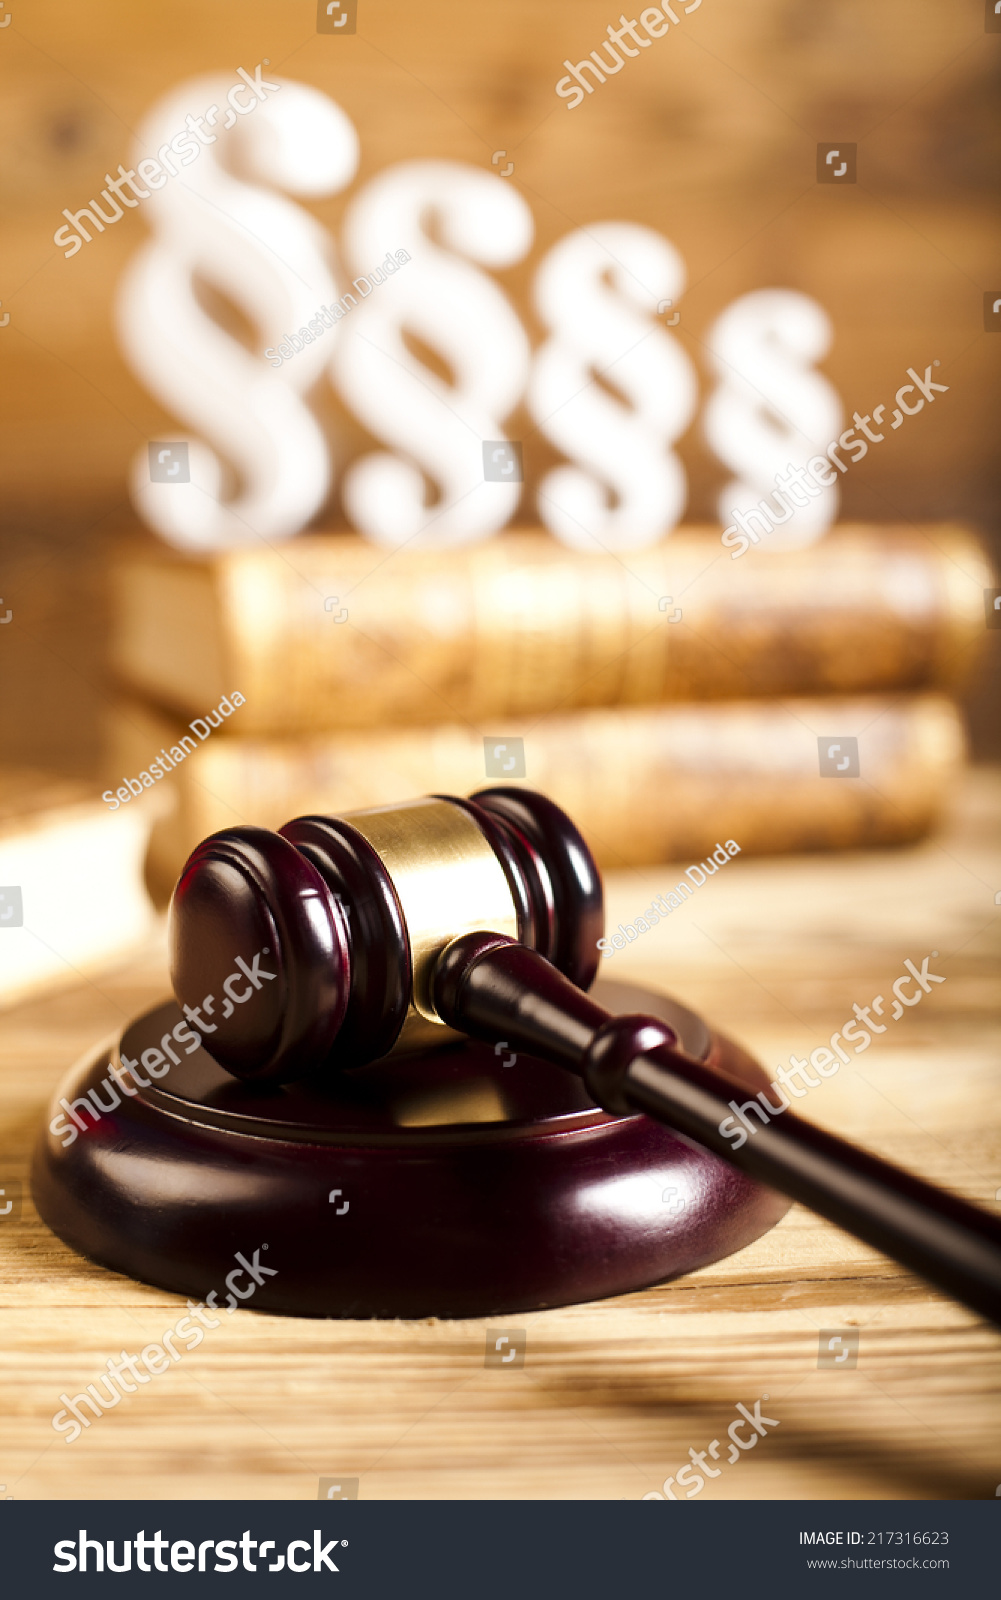 Gavel paragraph sign symbol stock photo 217316623 shutterstock gavel paragraph sign symbol buycottarizona Gallery